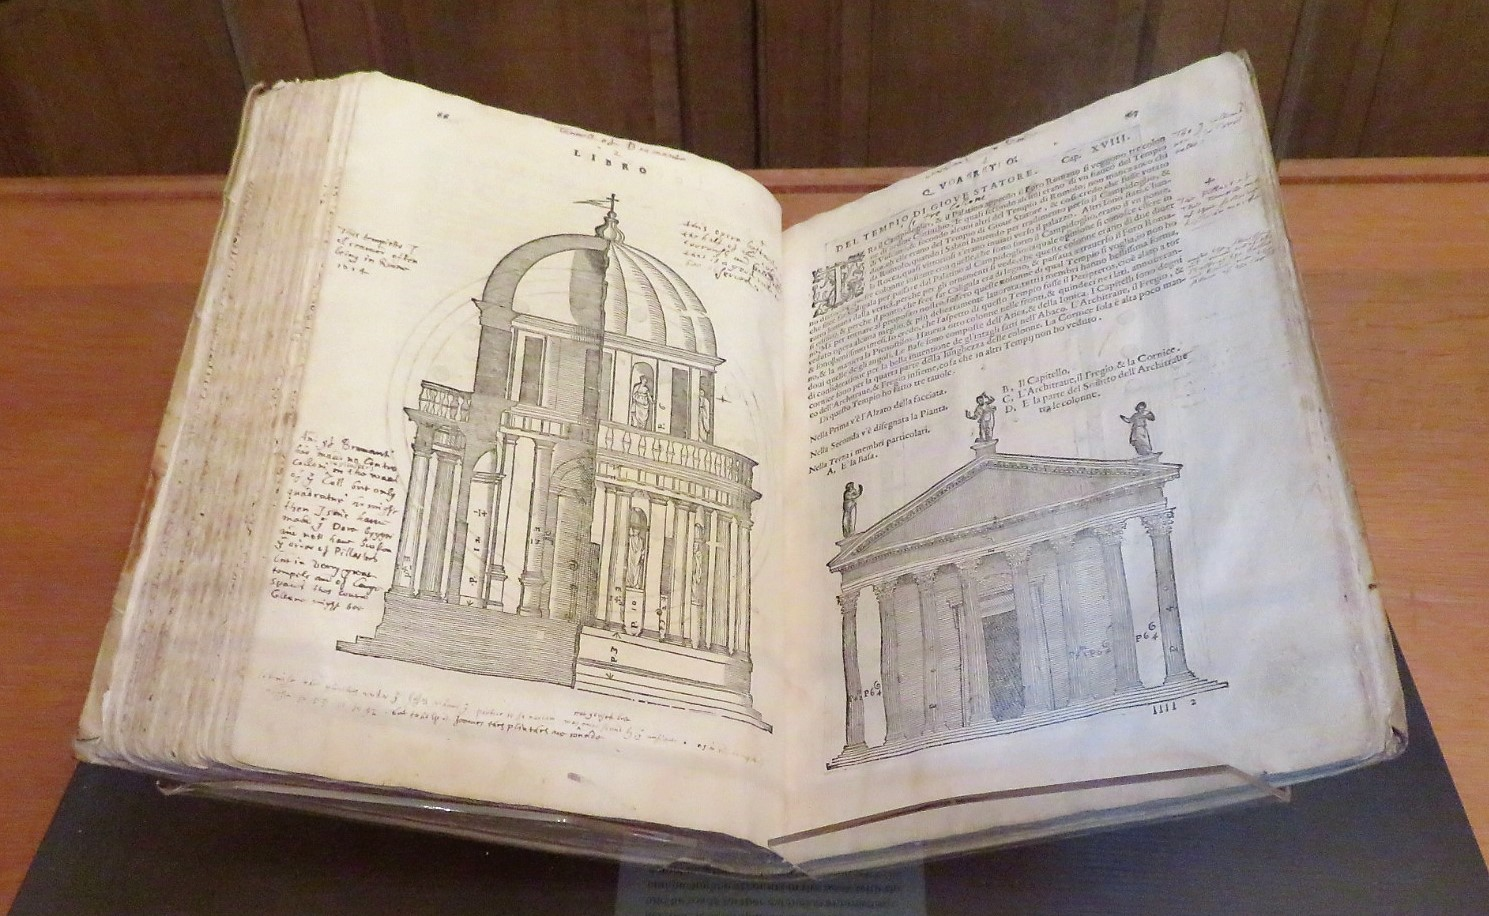 A photo of Inigo Jones' copy of Andrea Palladio's 'I Quattro Libri Dell Architettura' on display.